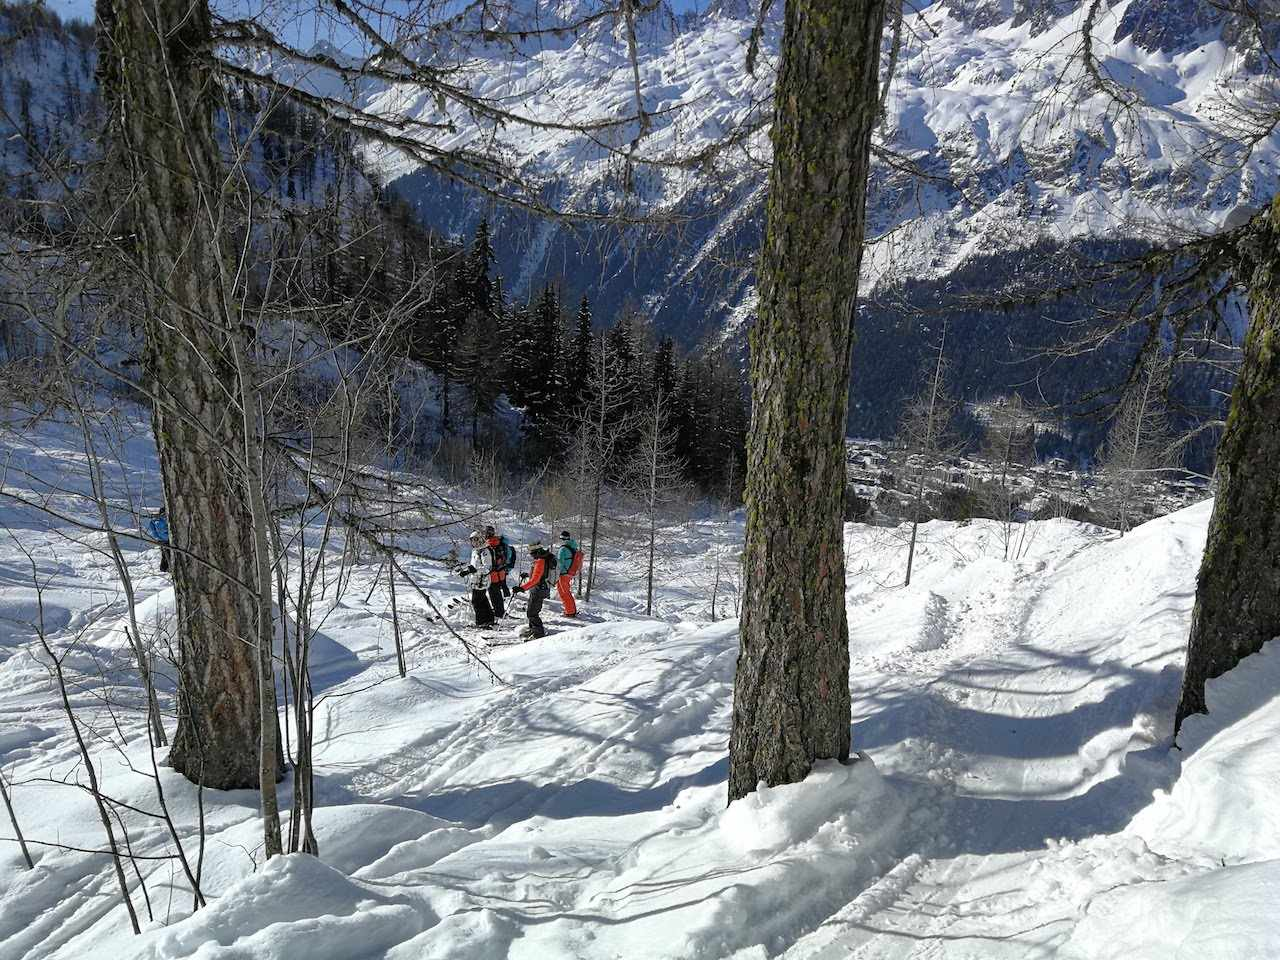 Skiing off piste through the trees